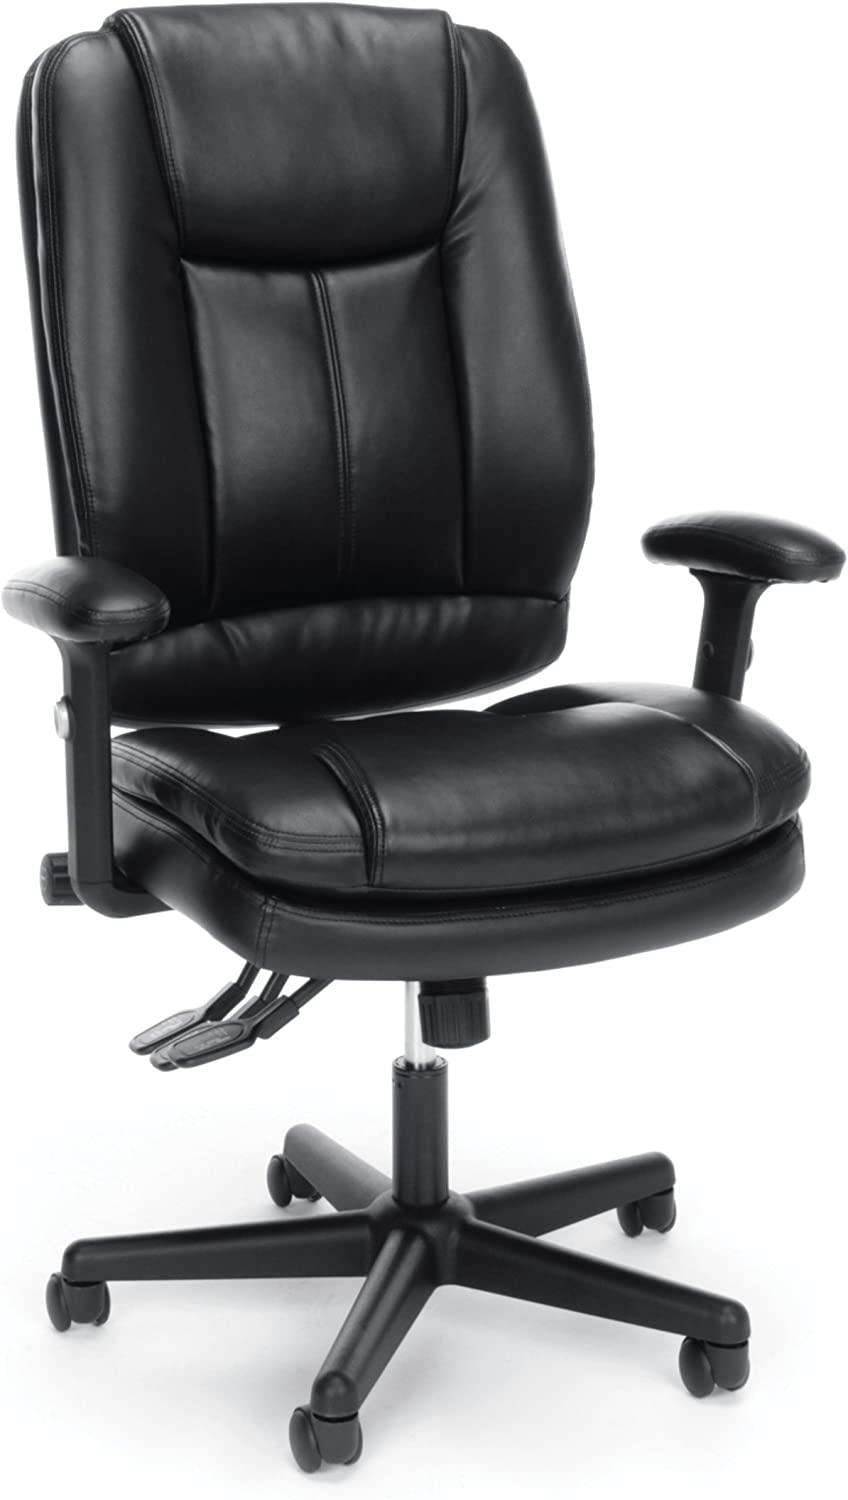 Essentials High Back Executive Chair – Leather Office Chair with Adjustable Arms, Black -BLK